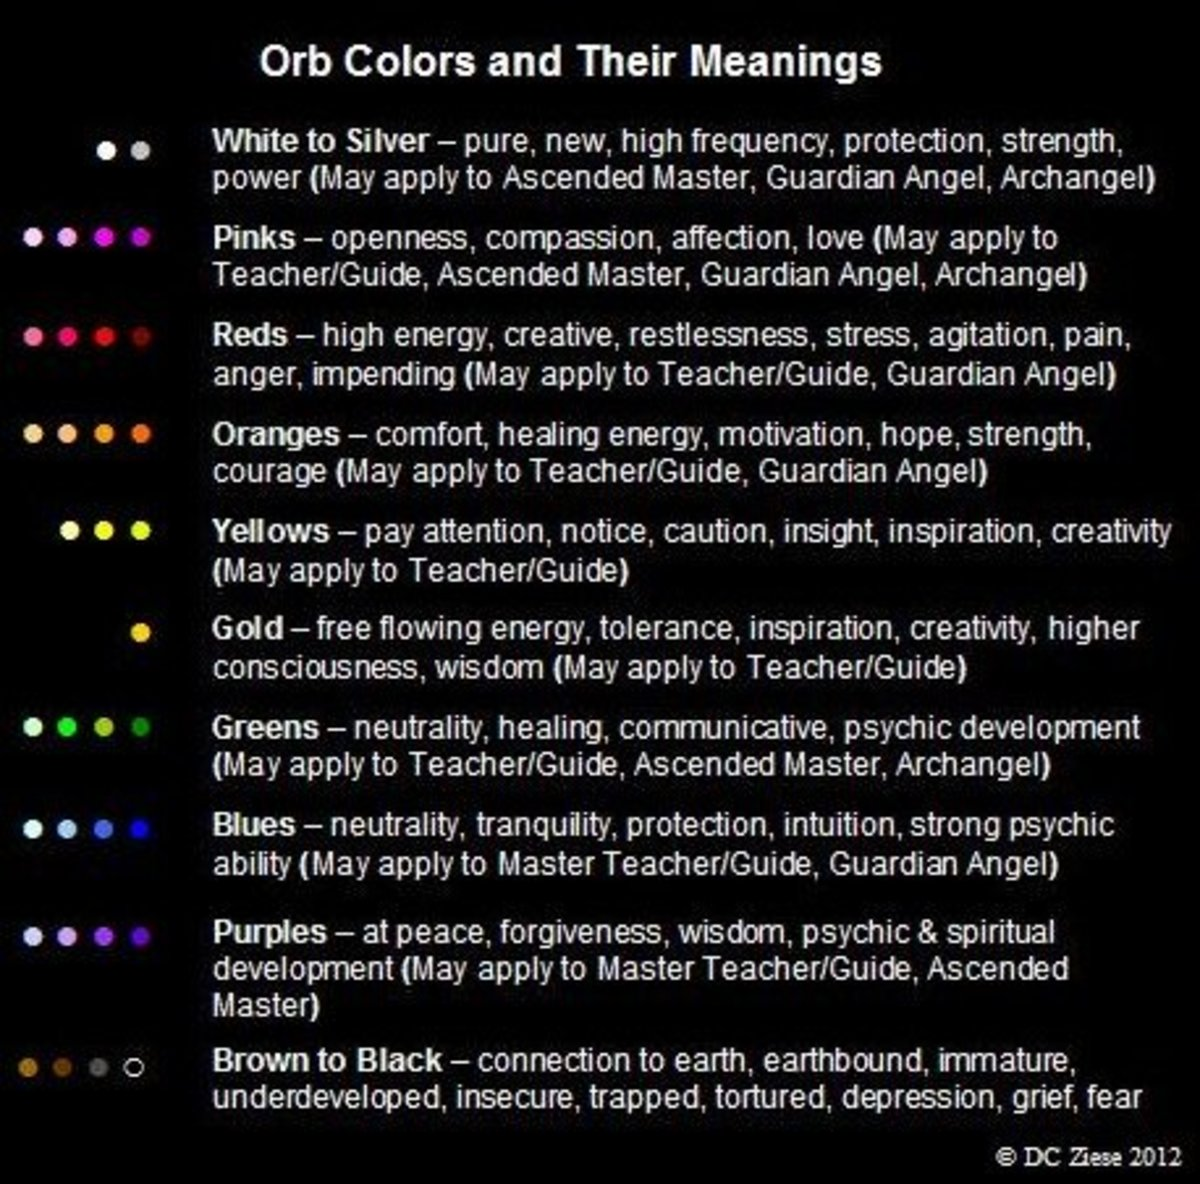 Orb Colors And Their Meanings Chart